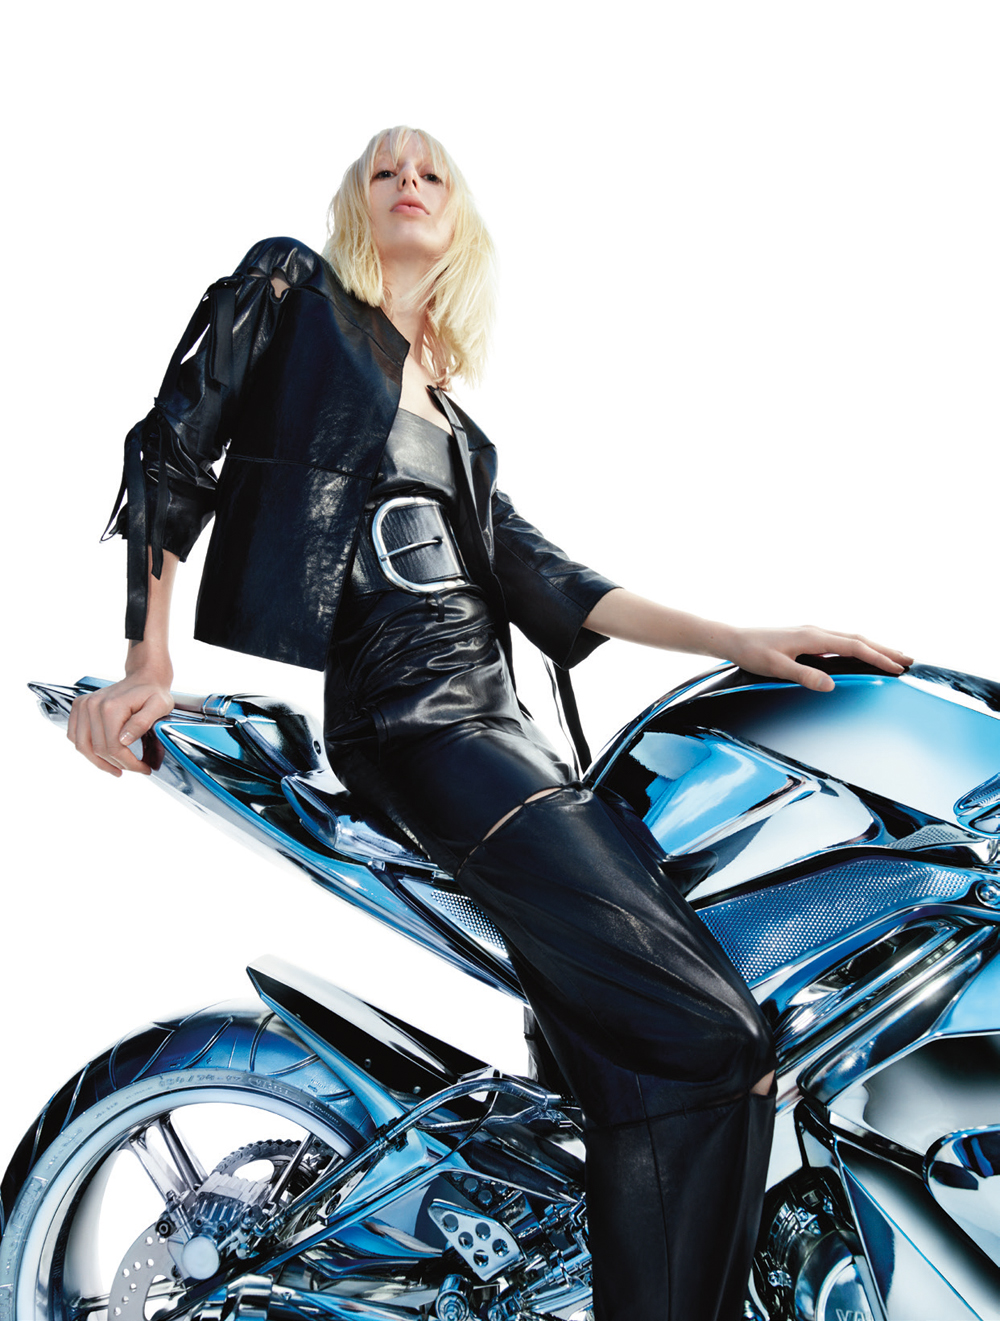 Female Model Leather Chrome Motorcycle Blond